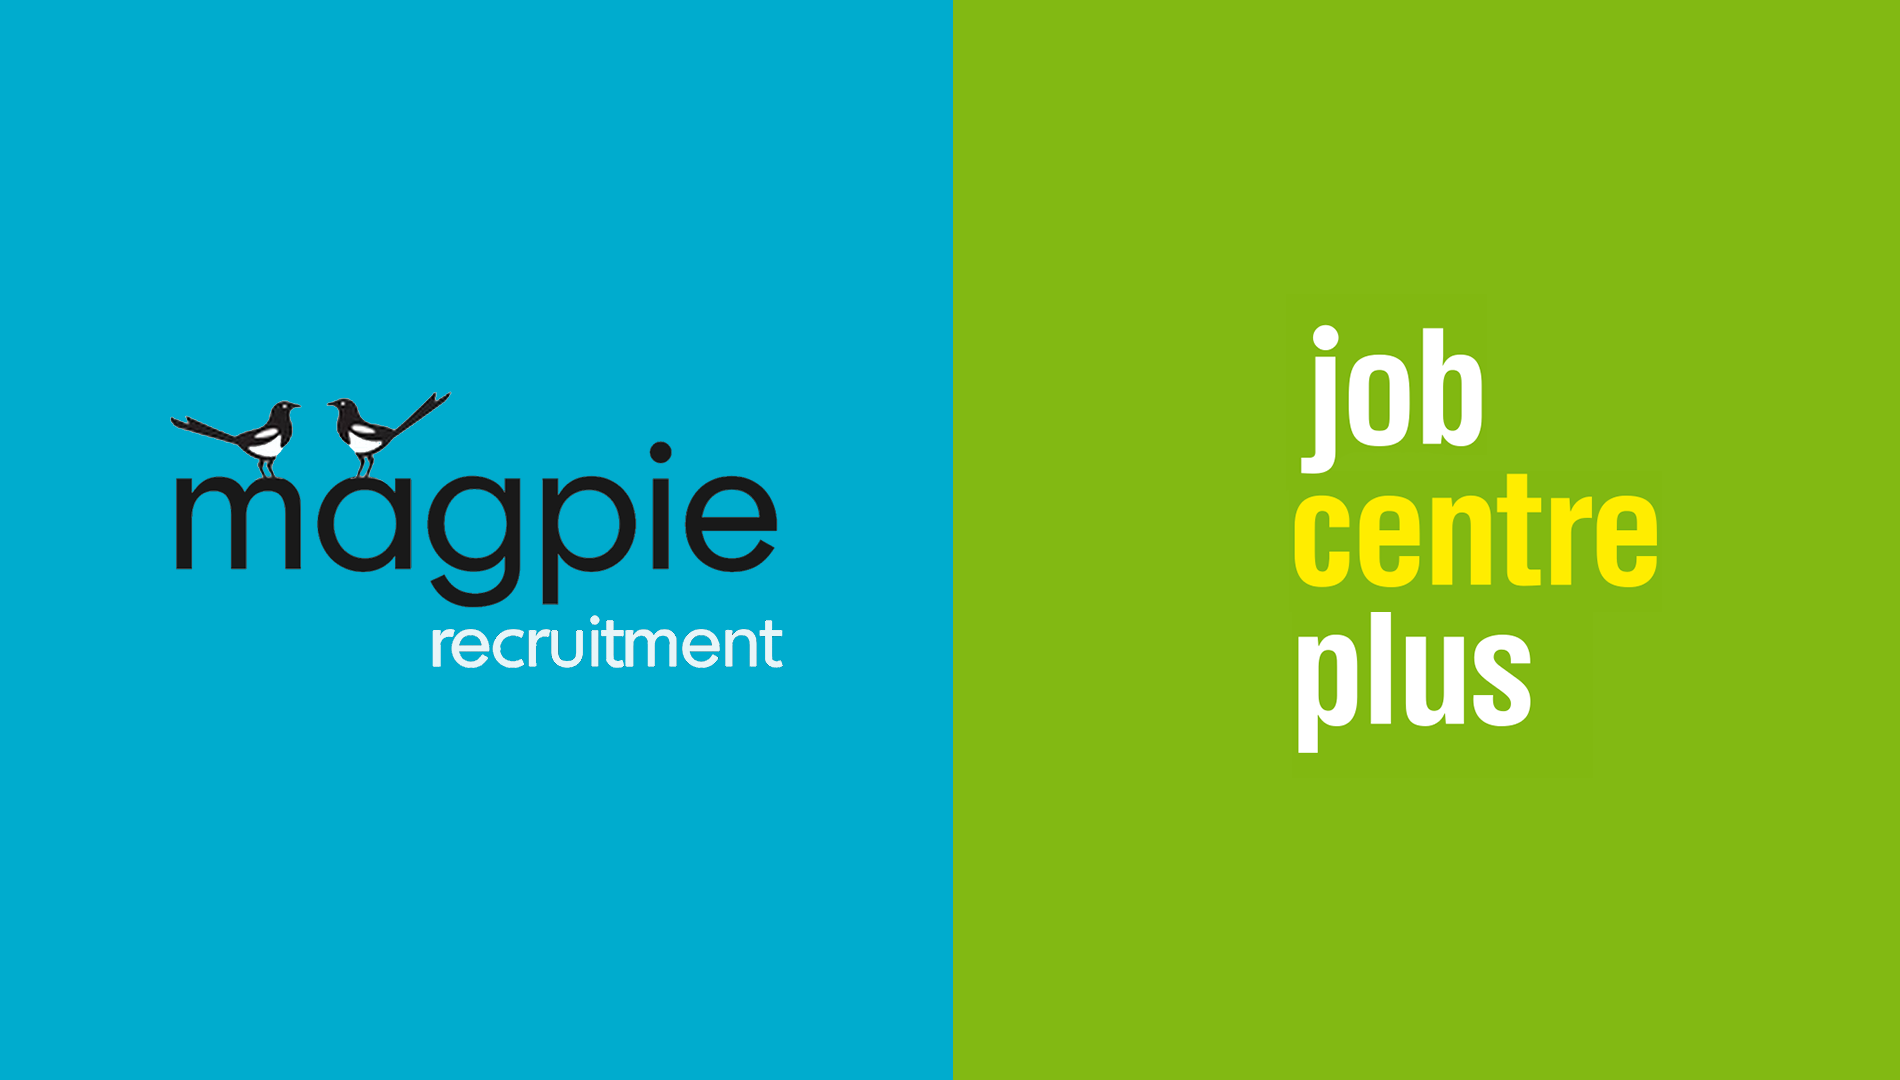 Recruitment Agency VS Jobcentre: What is the Difference